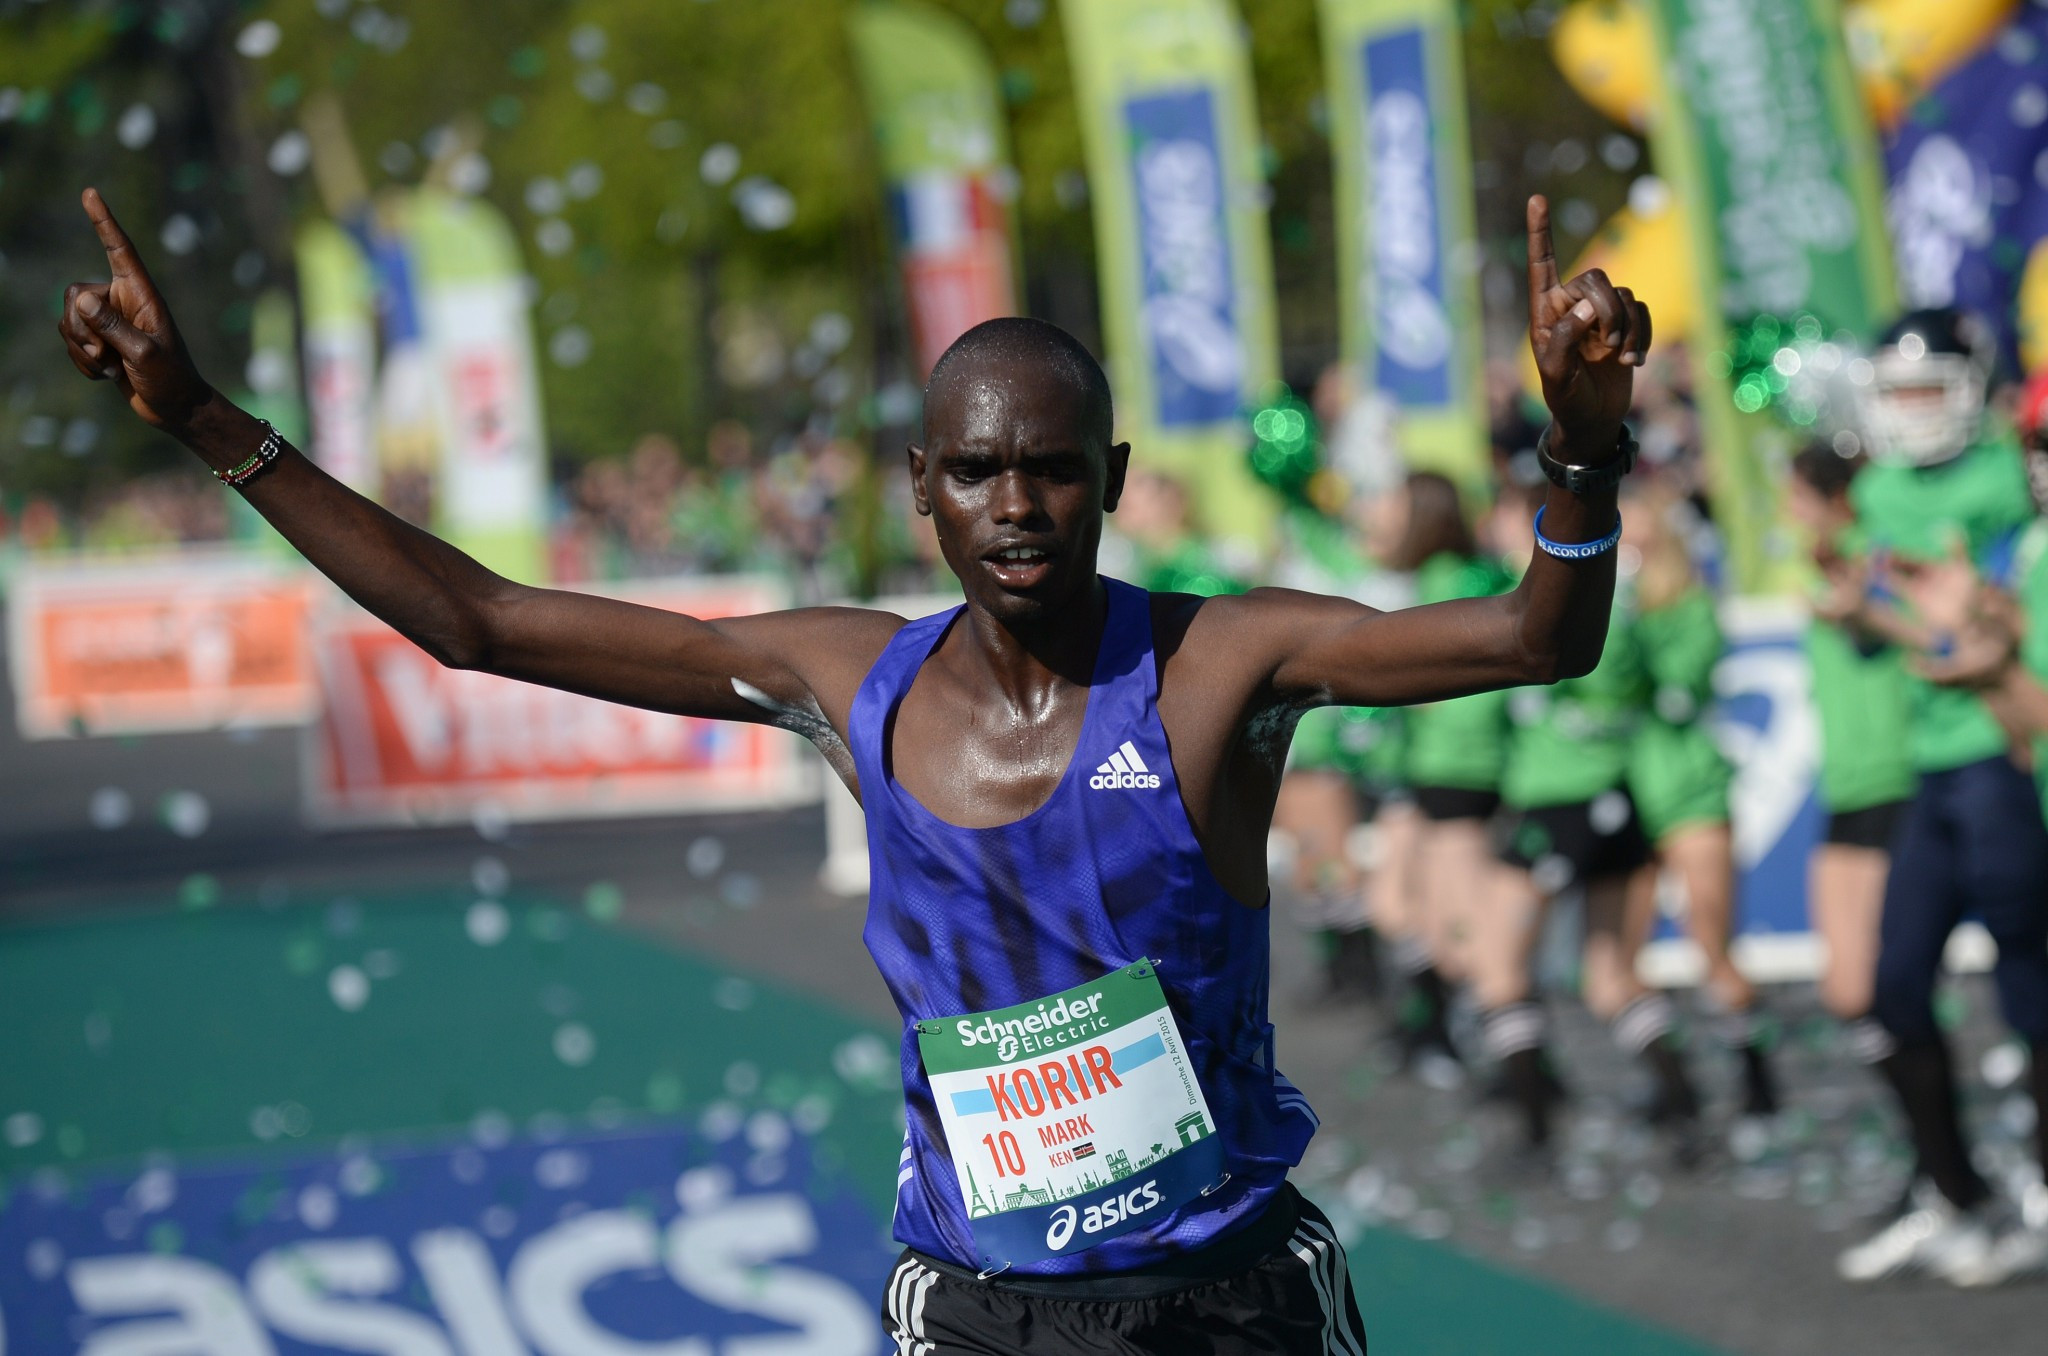 Victory for Kenyan Korir and Ethiopian Mengistu at Paris Marathon